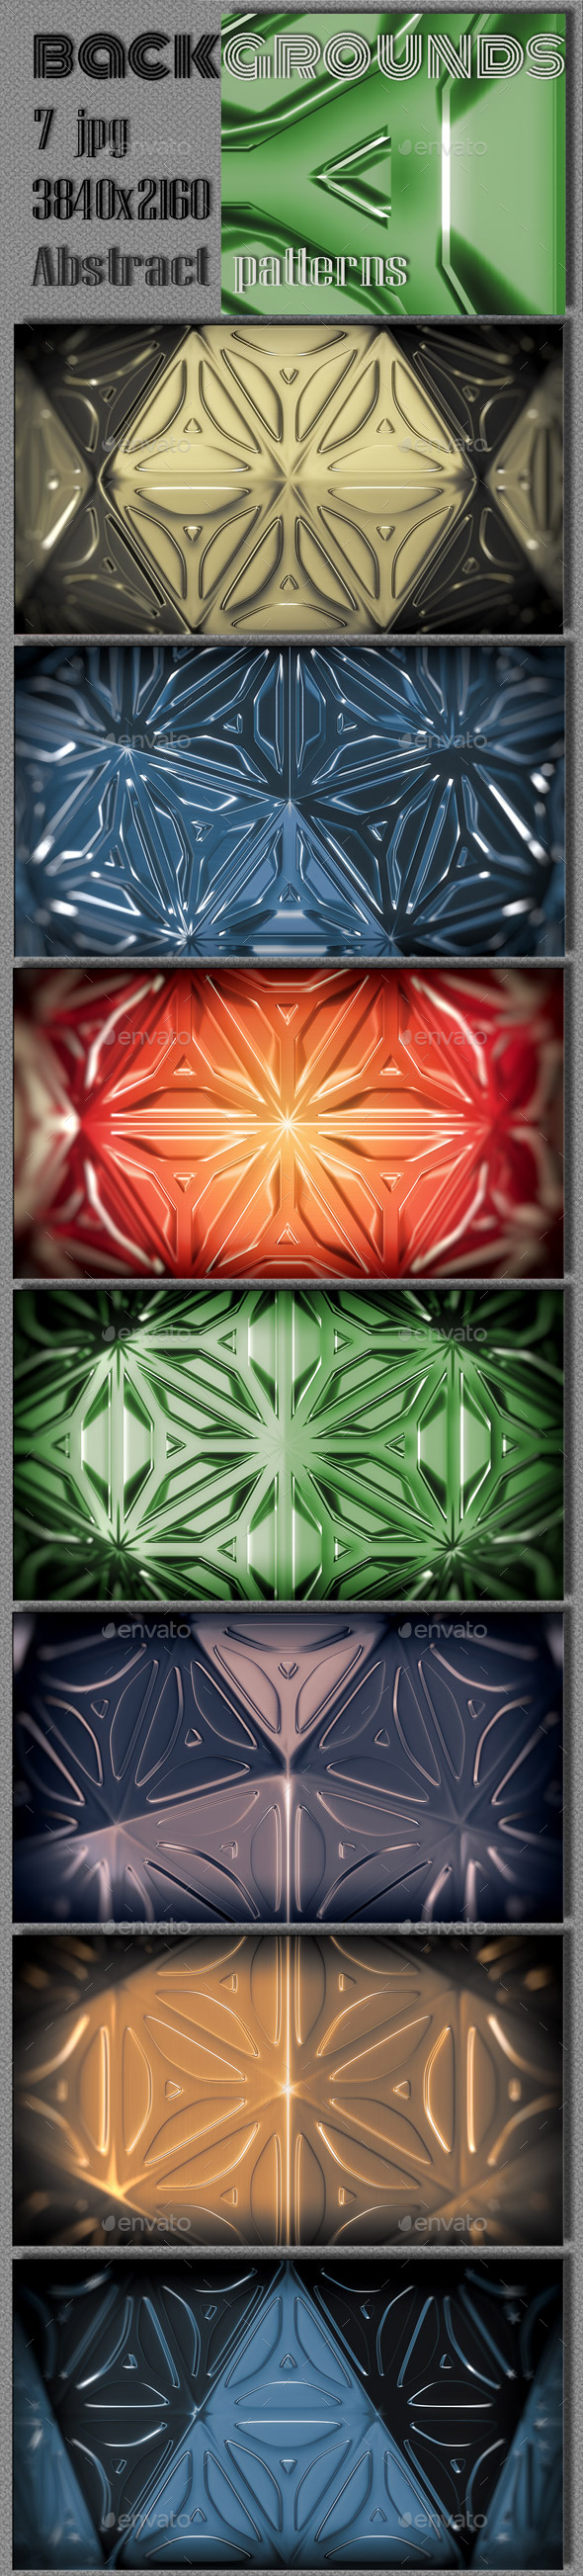 Patterns Metal Triangle Surface - Patterns Backgrounds